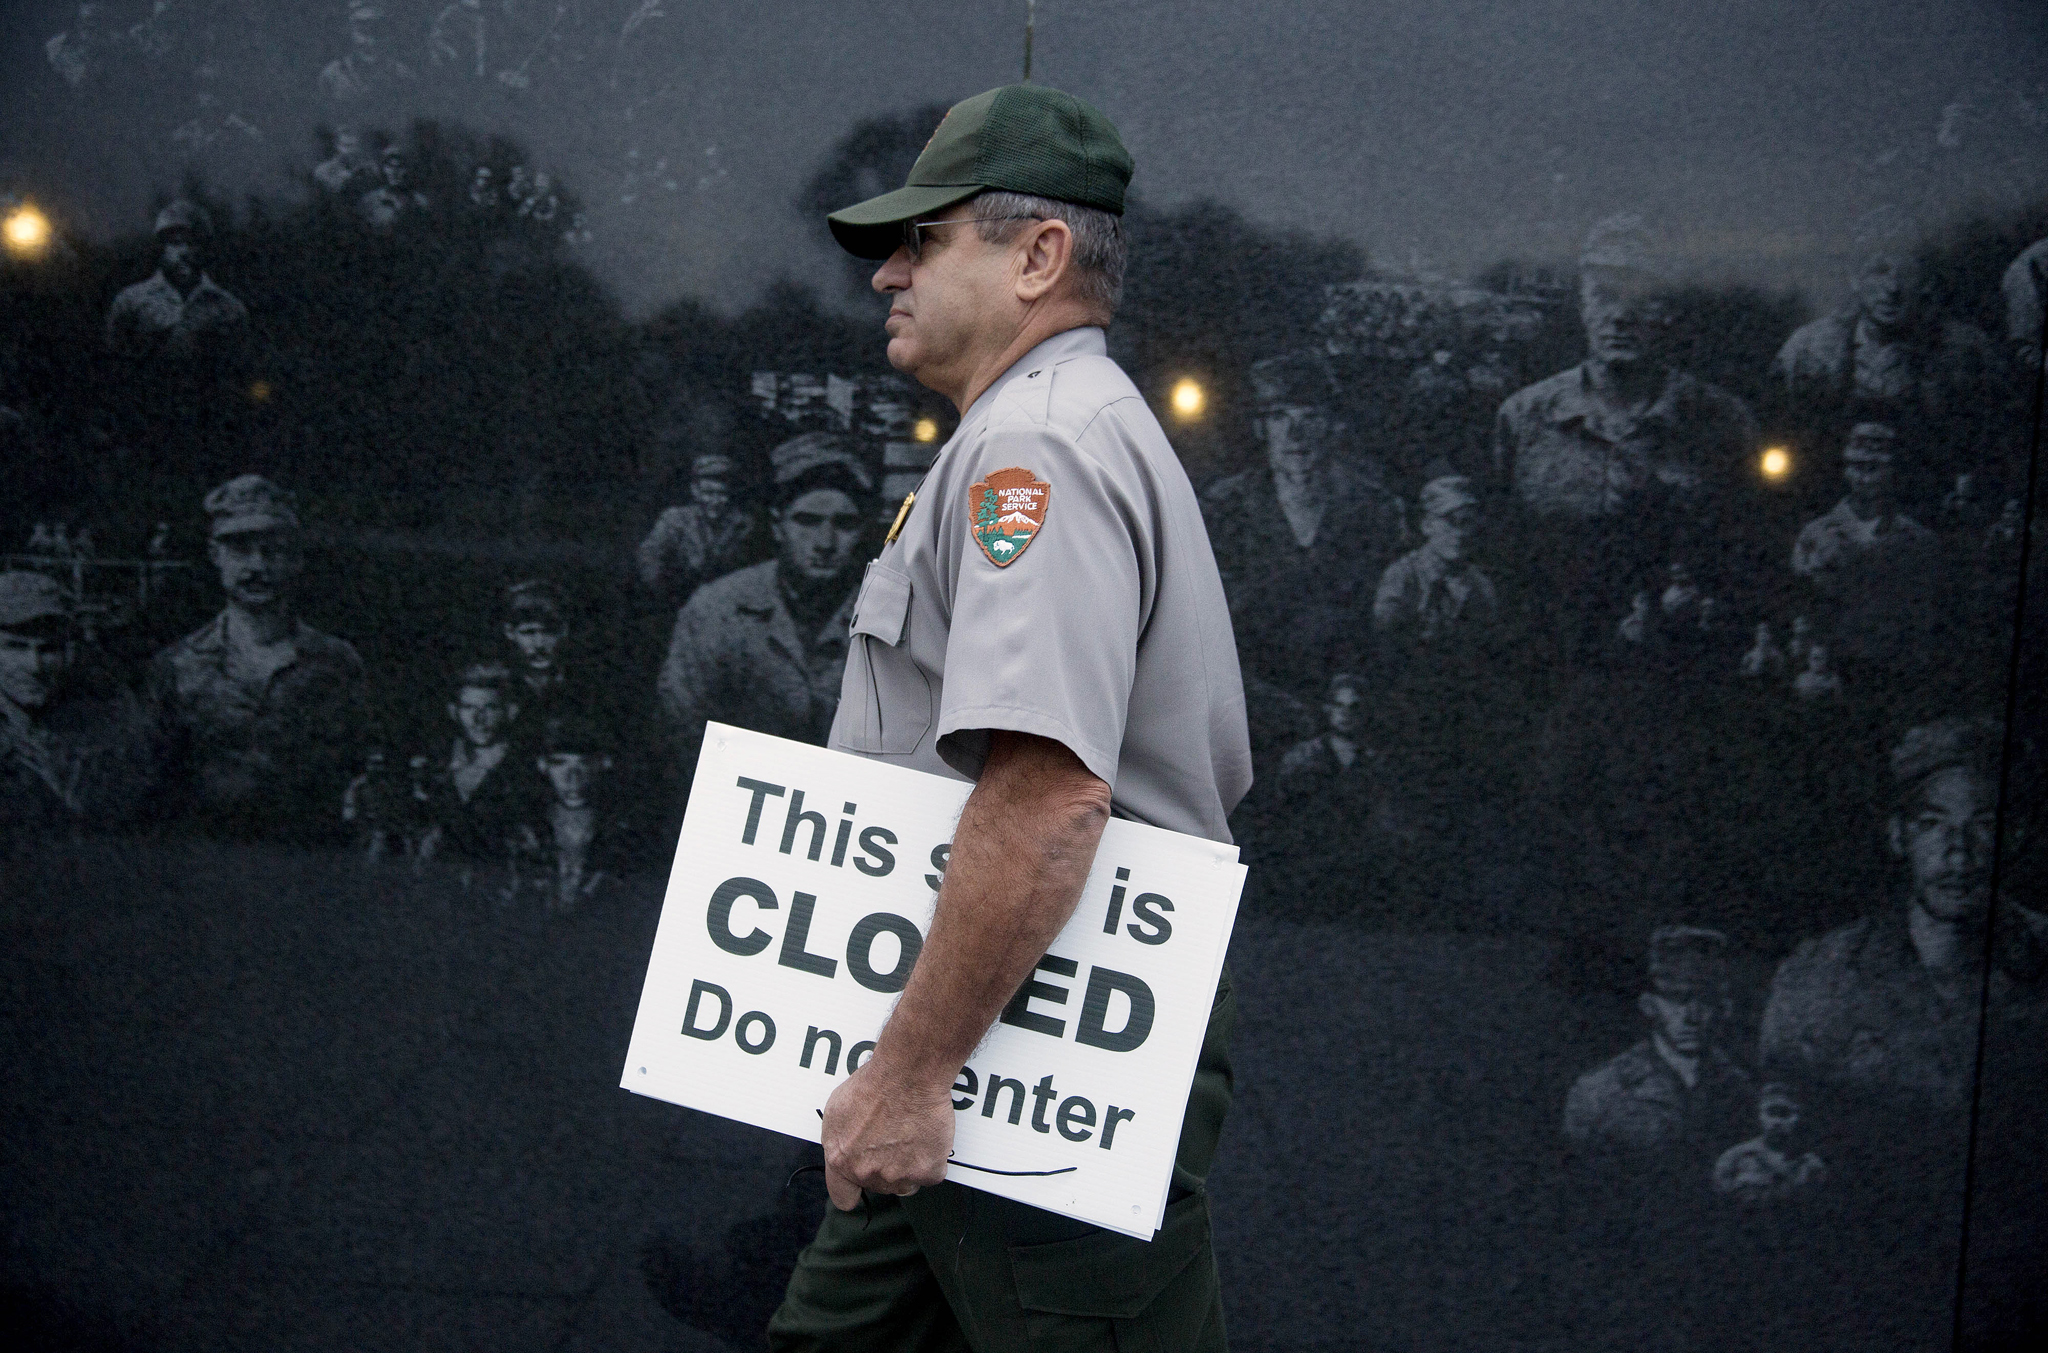 Congress Vote Ends Impasse to Be Revisited in January...National Park Service park ranger Richard Trott walks through the Korean War Veterans Memorial with a closed sign he removed in Washington, D.C., U.S., on Thursday, Oct. 17, 2013. After the partisan passions and heated rhetoric, the disruptions of a government shutdown and displays of dysfunction, Congress did what it could have done weeks ago: voted to fund the government and lift the debt limit. Photographer: Andrew Harrer/Bloomberg